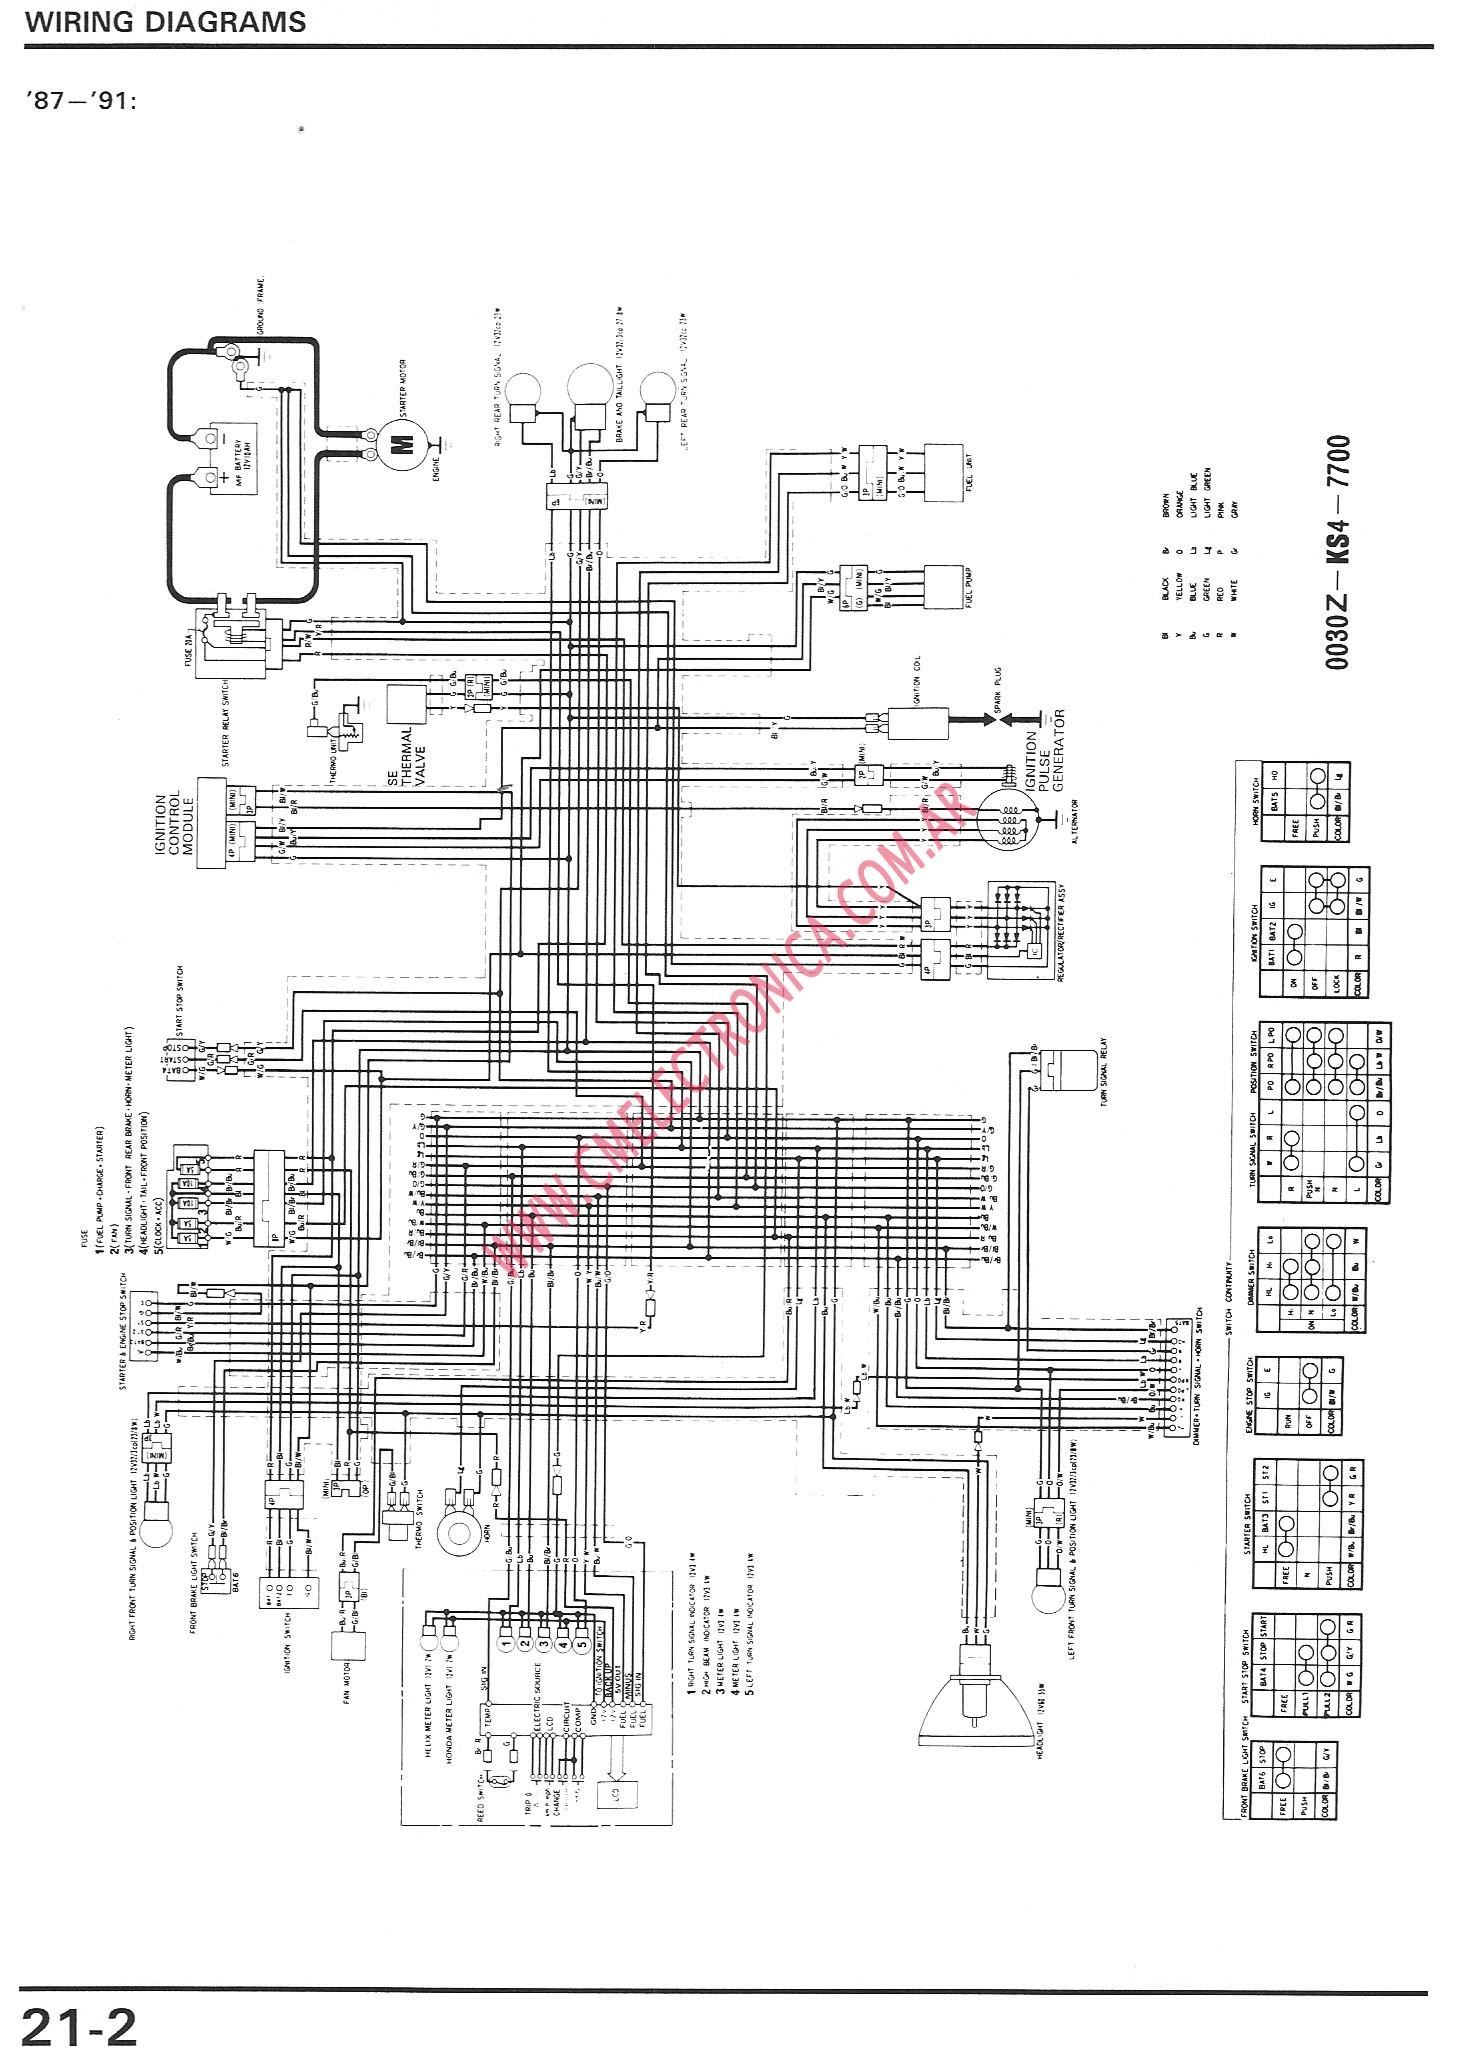 B88c57 Wiring Diagram For Daihatsu Charade Wiring Library